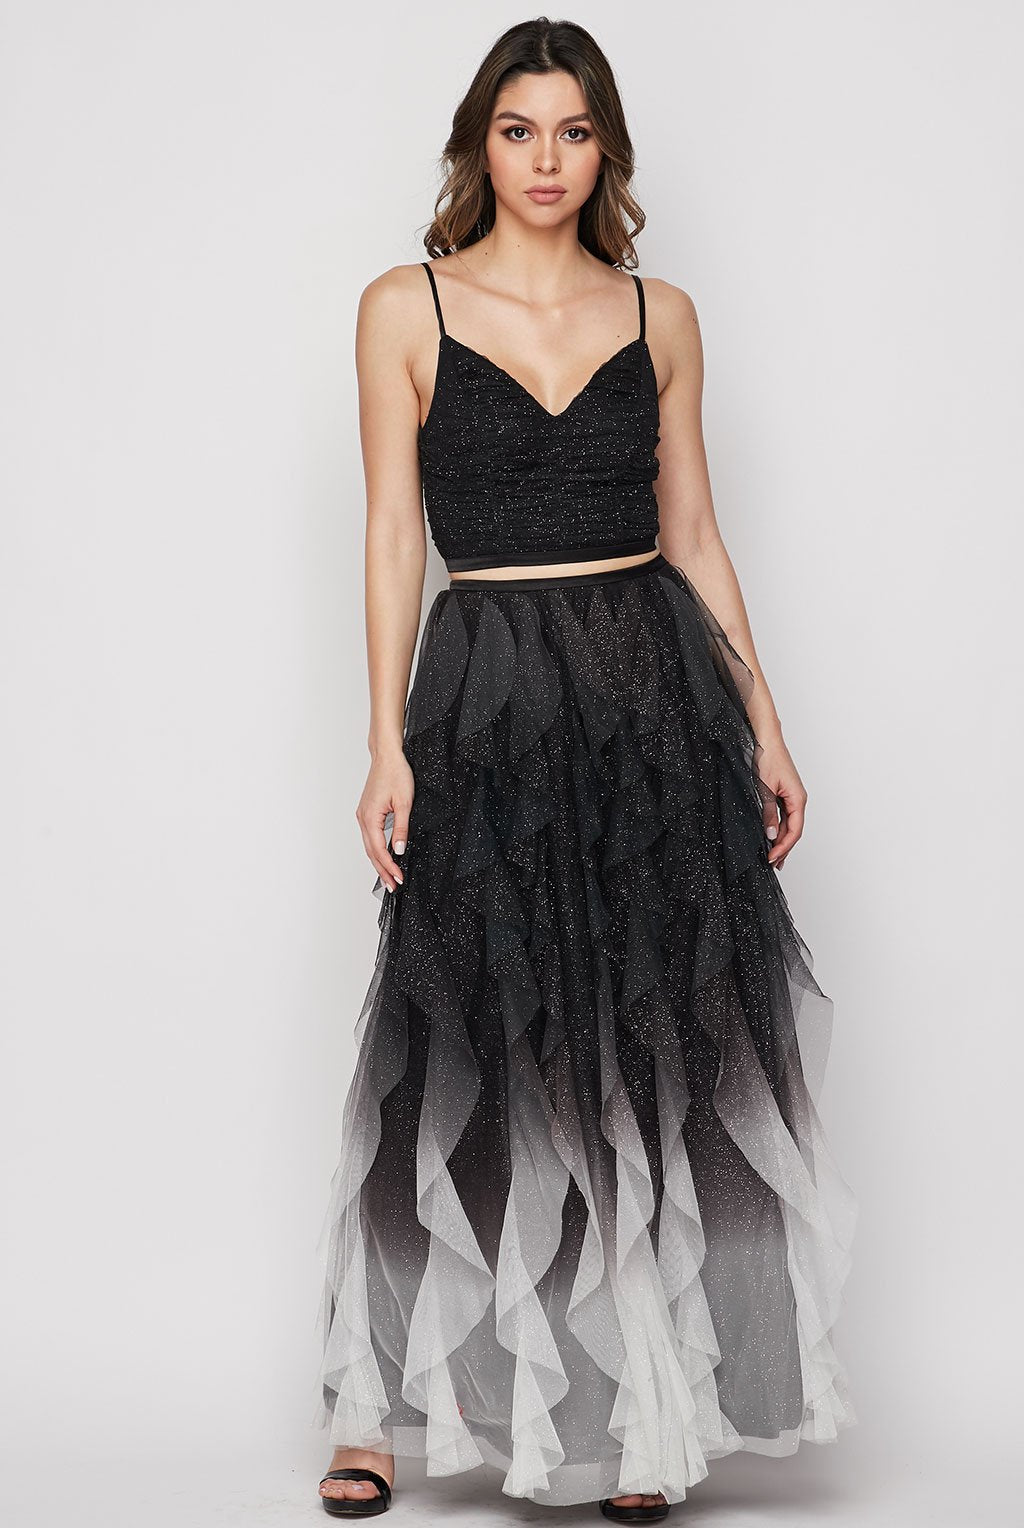 Teeze Me | Sweetheart Glitter Mesh Petal Ruffle Ombre Two Piece Dress  | Black/Off-White